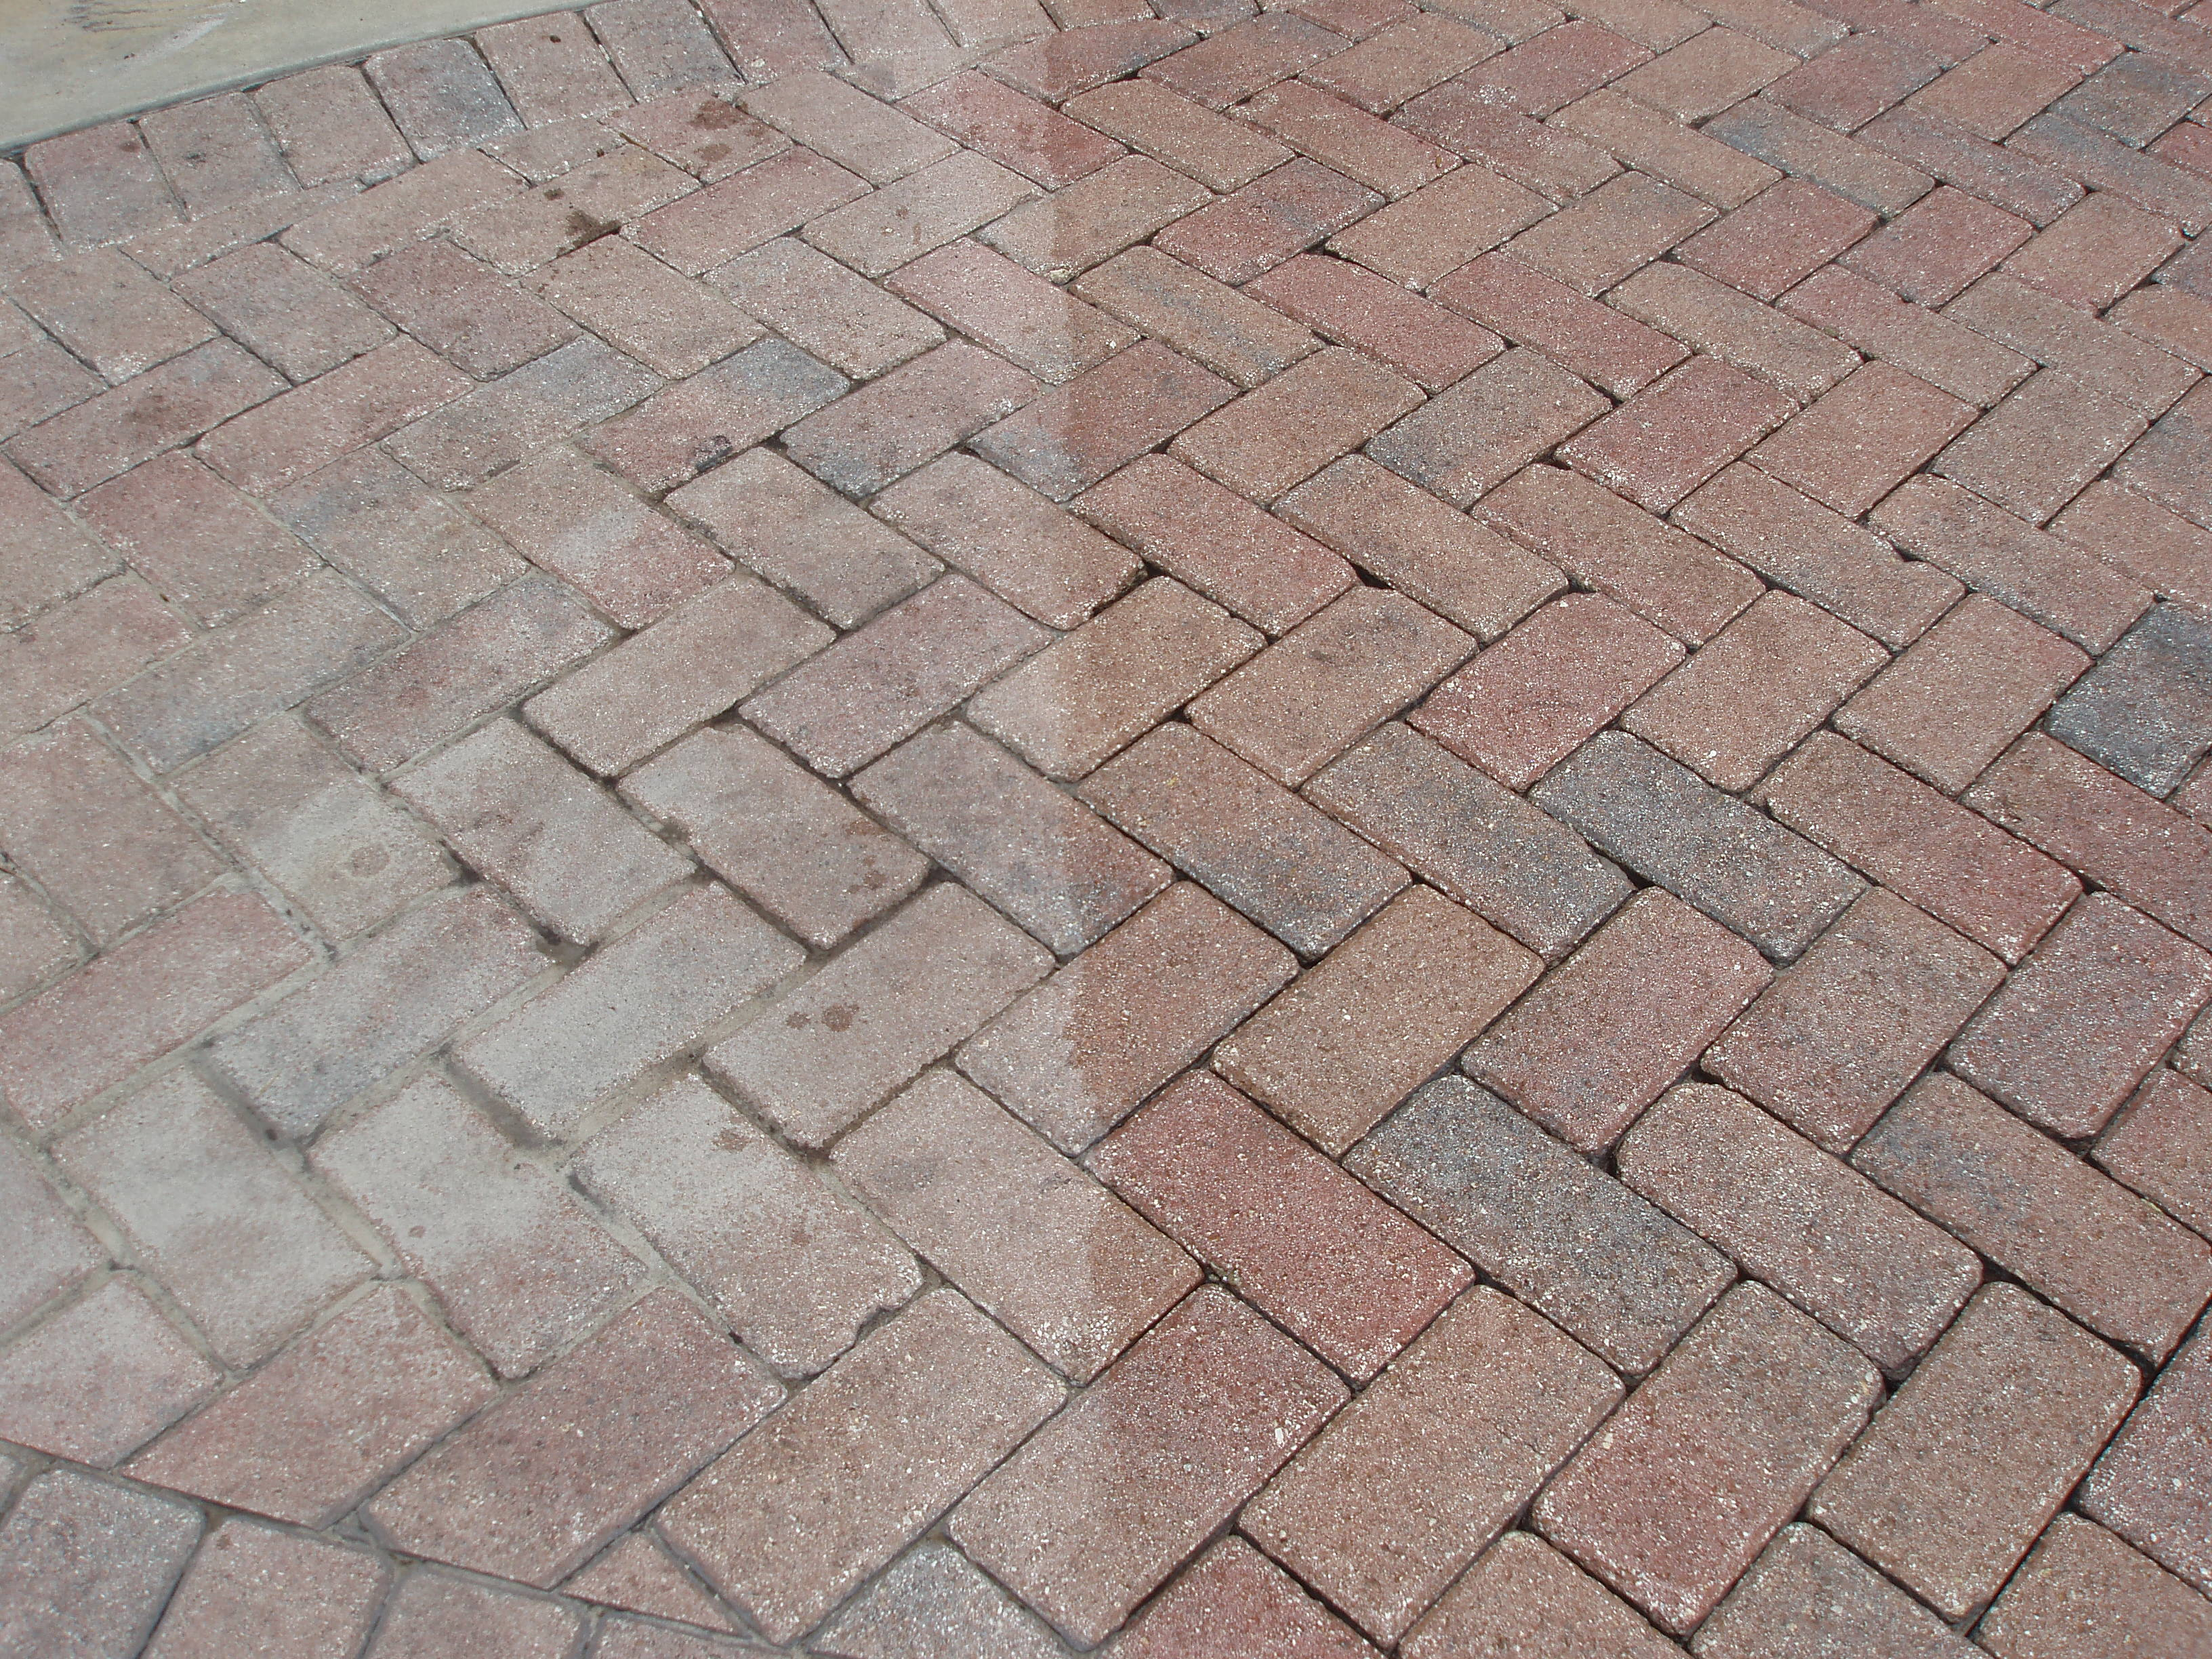 Pavers Are Generally Used For Applications Such As Courtyards, Walkways,  Pool, Driveways, Patios And Garden Pathways.